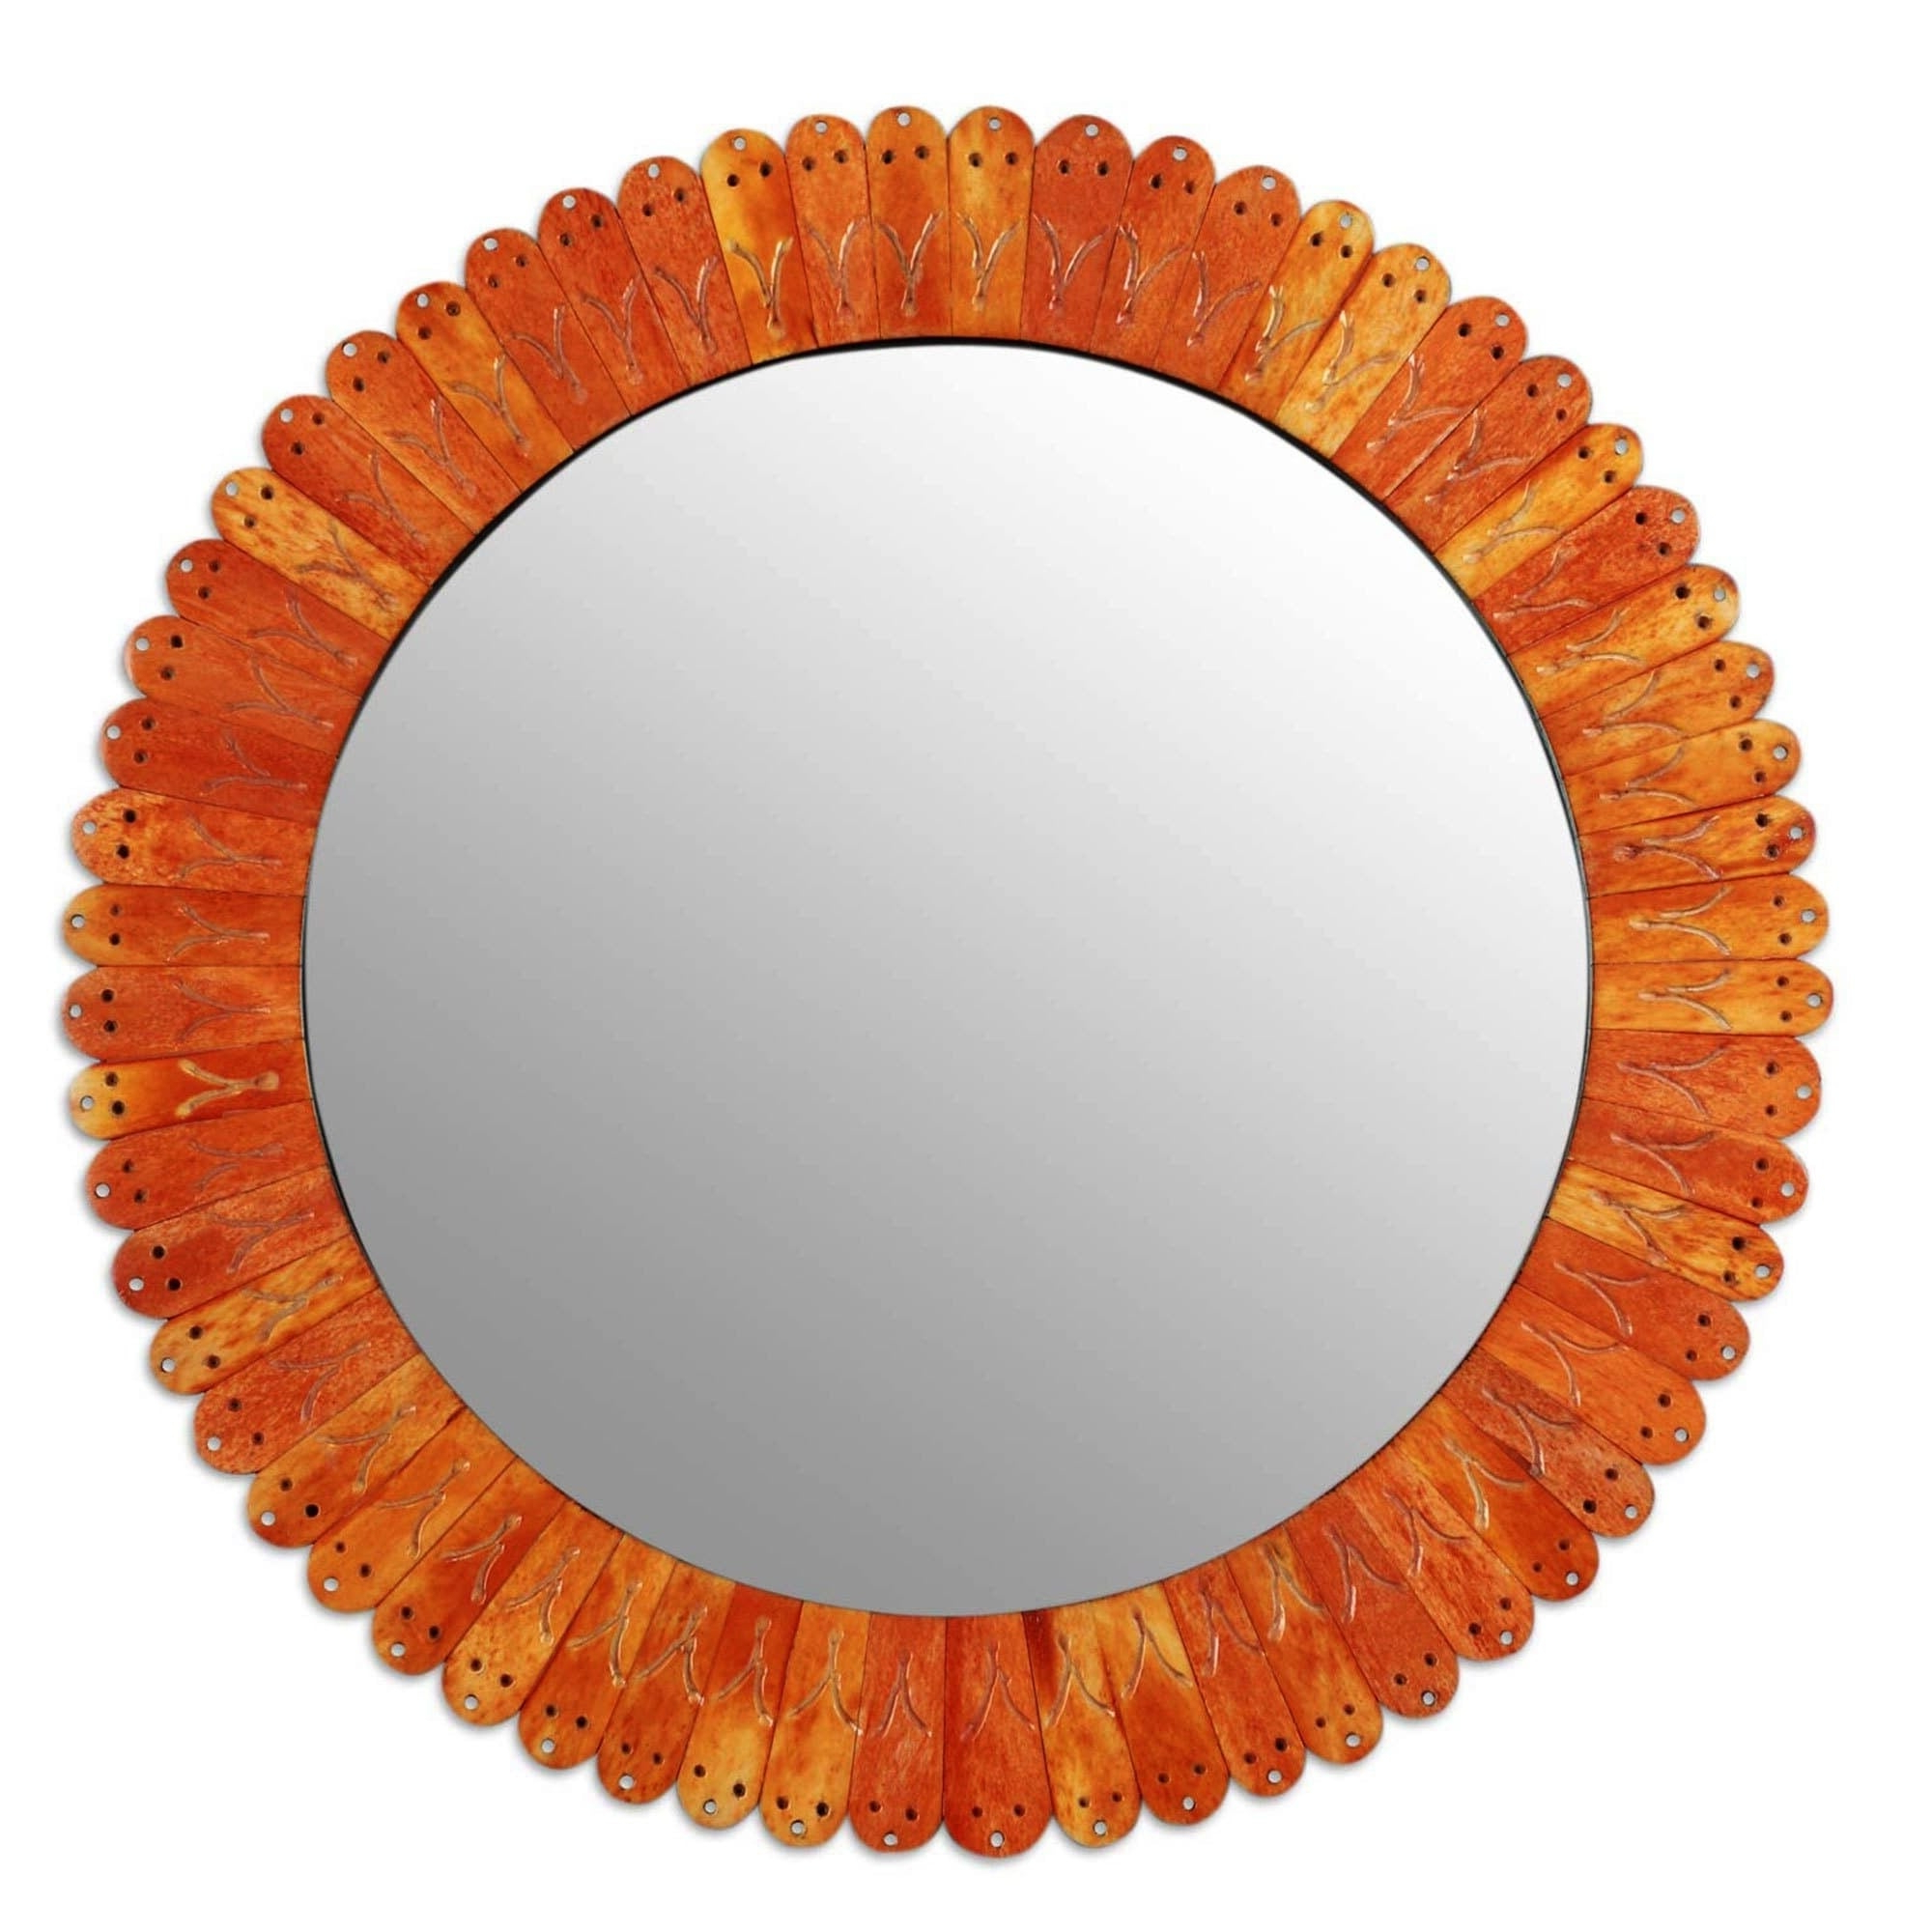 Orange Wall Mirrors Within Latest Handmade Bone Glass 'sunset In Moradabad' Wall Mirror (India) – Orange (View 13 of 20)